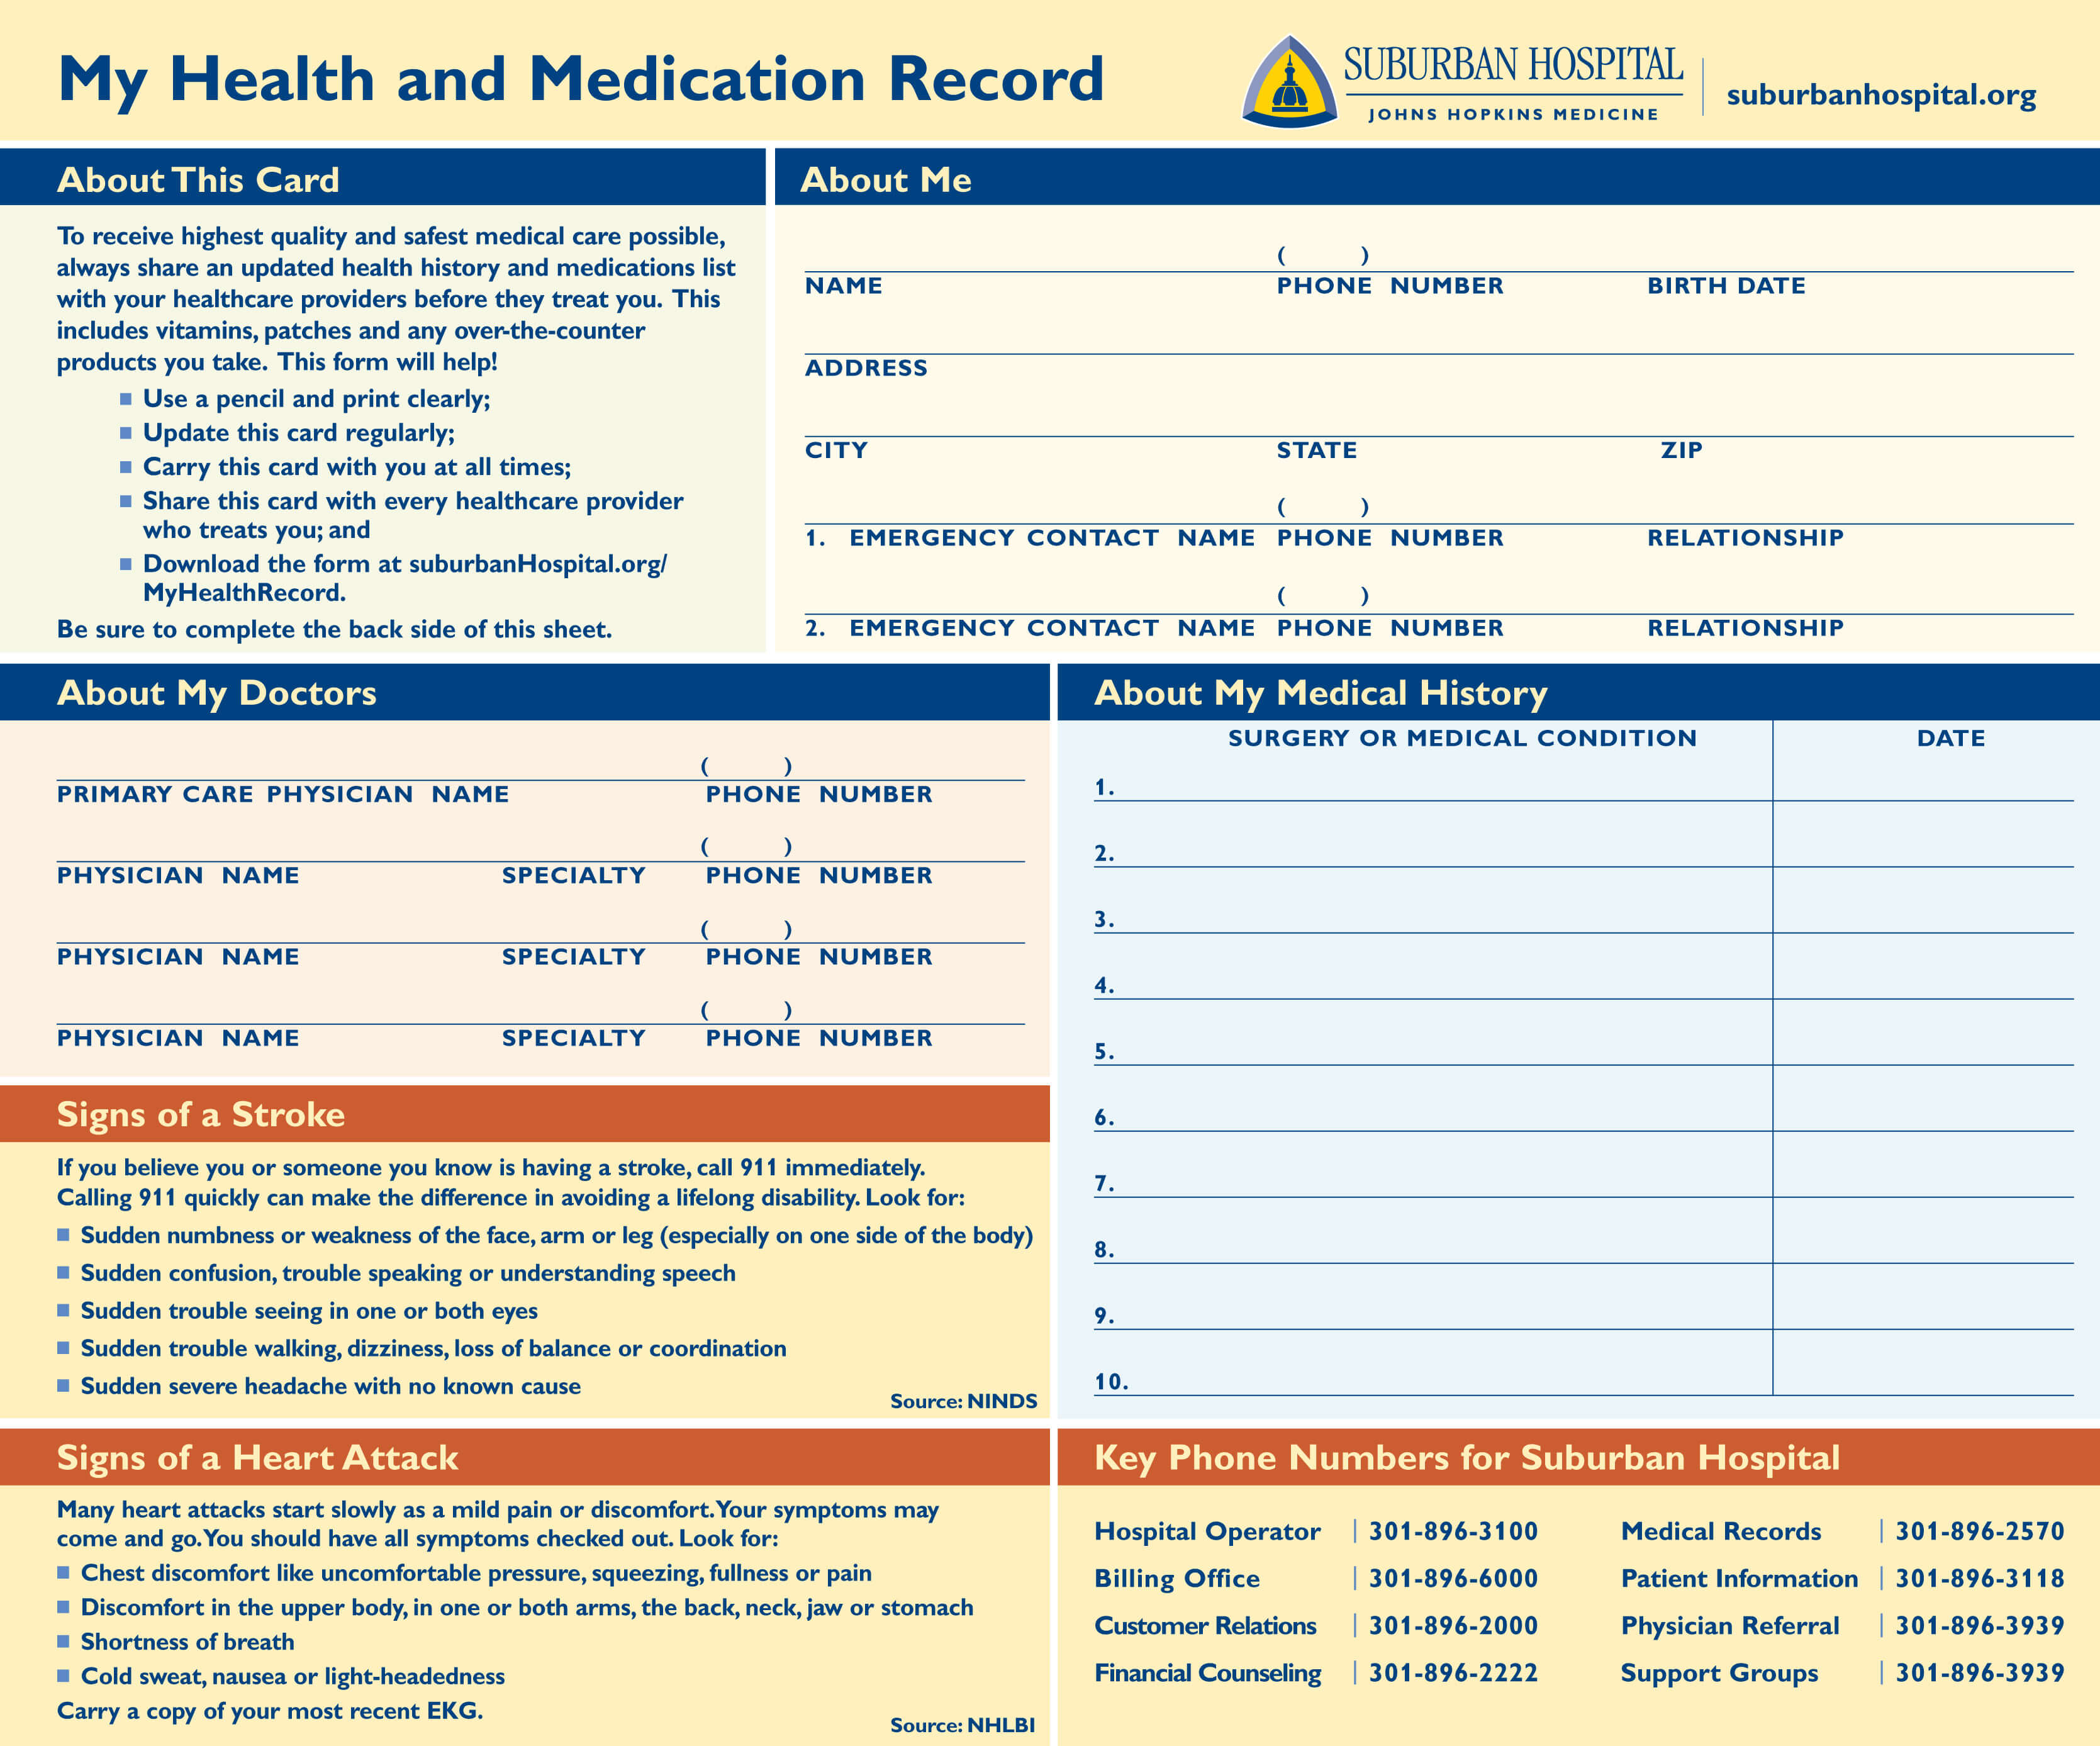 My Health Record Document front